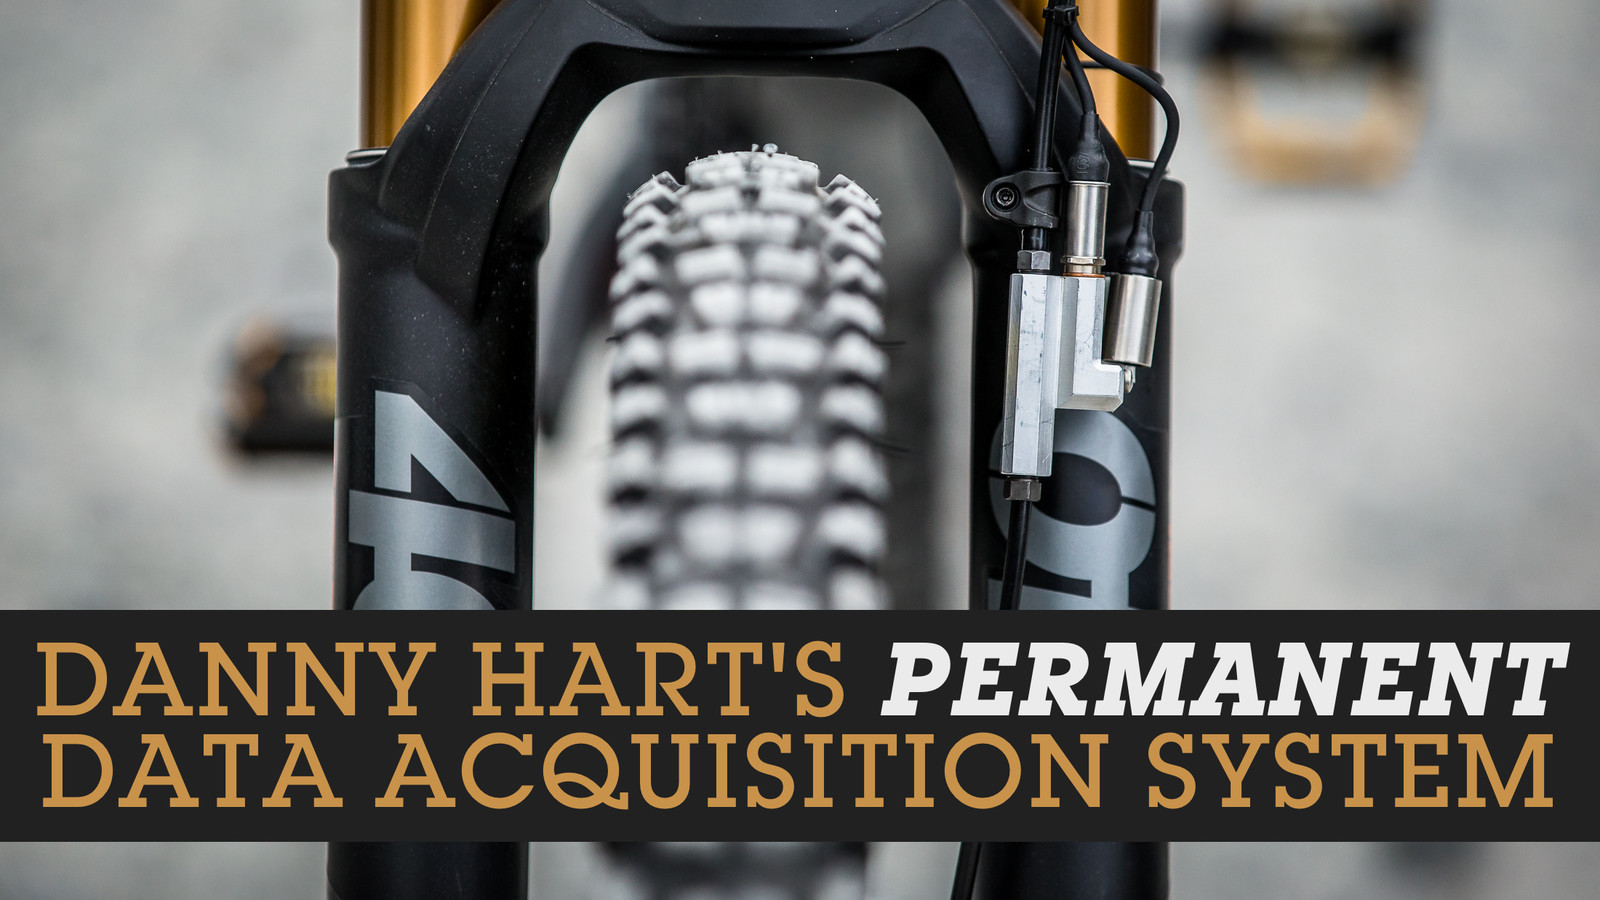 Danny Hart's Permanent Data Acquisition System